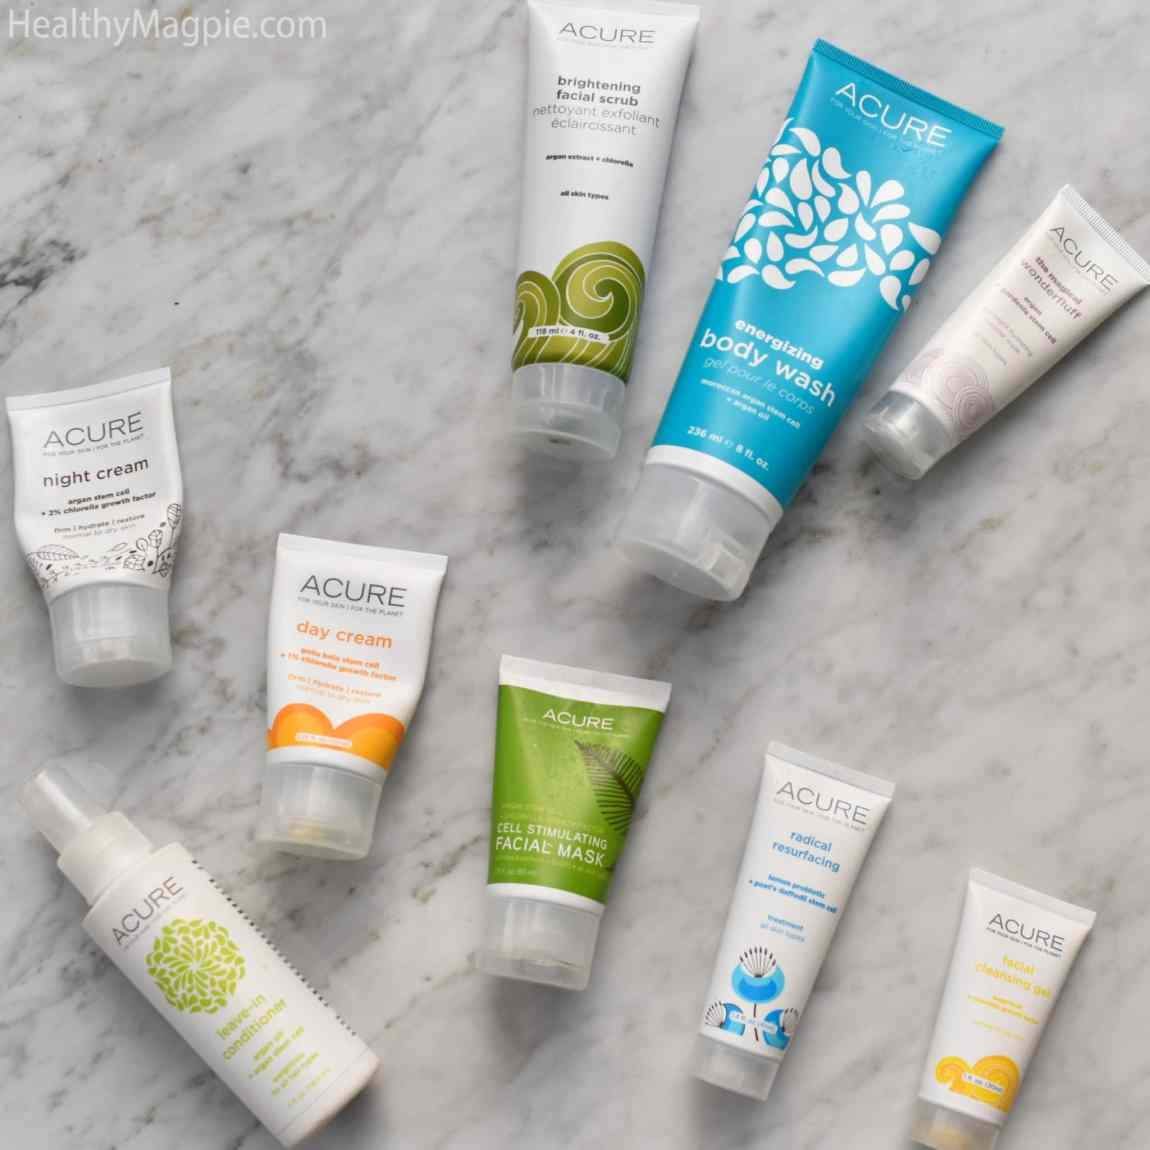 Acure Organics Skin Care: New Packaging, Hits And Misses